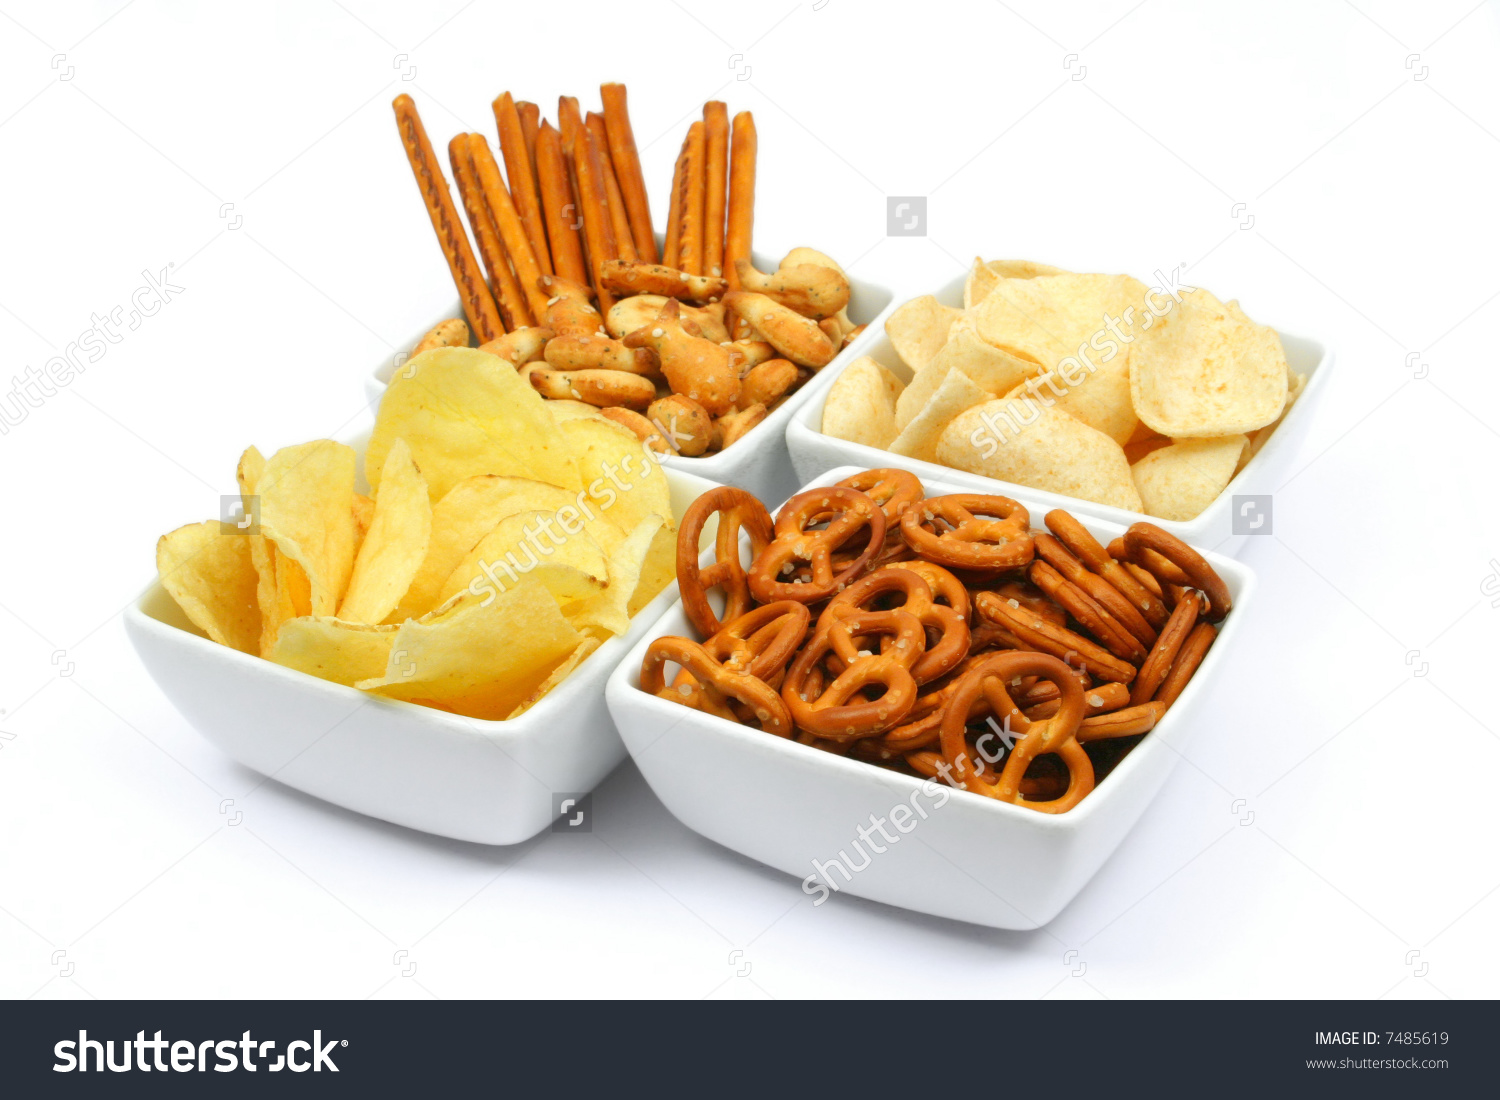 Salty snack clipart - Clipground